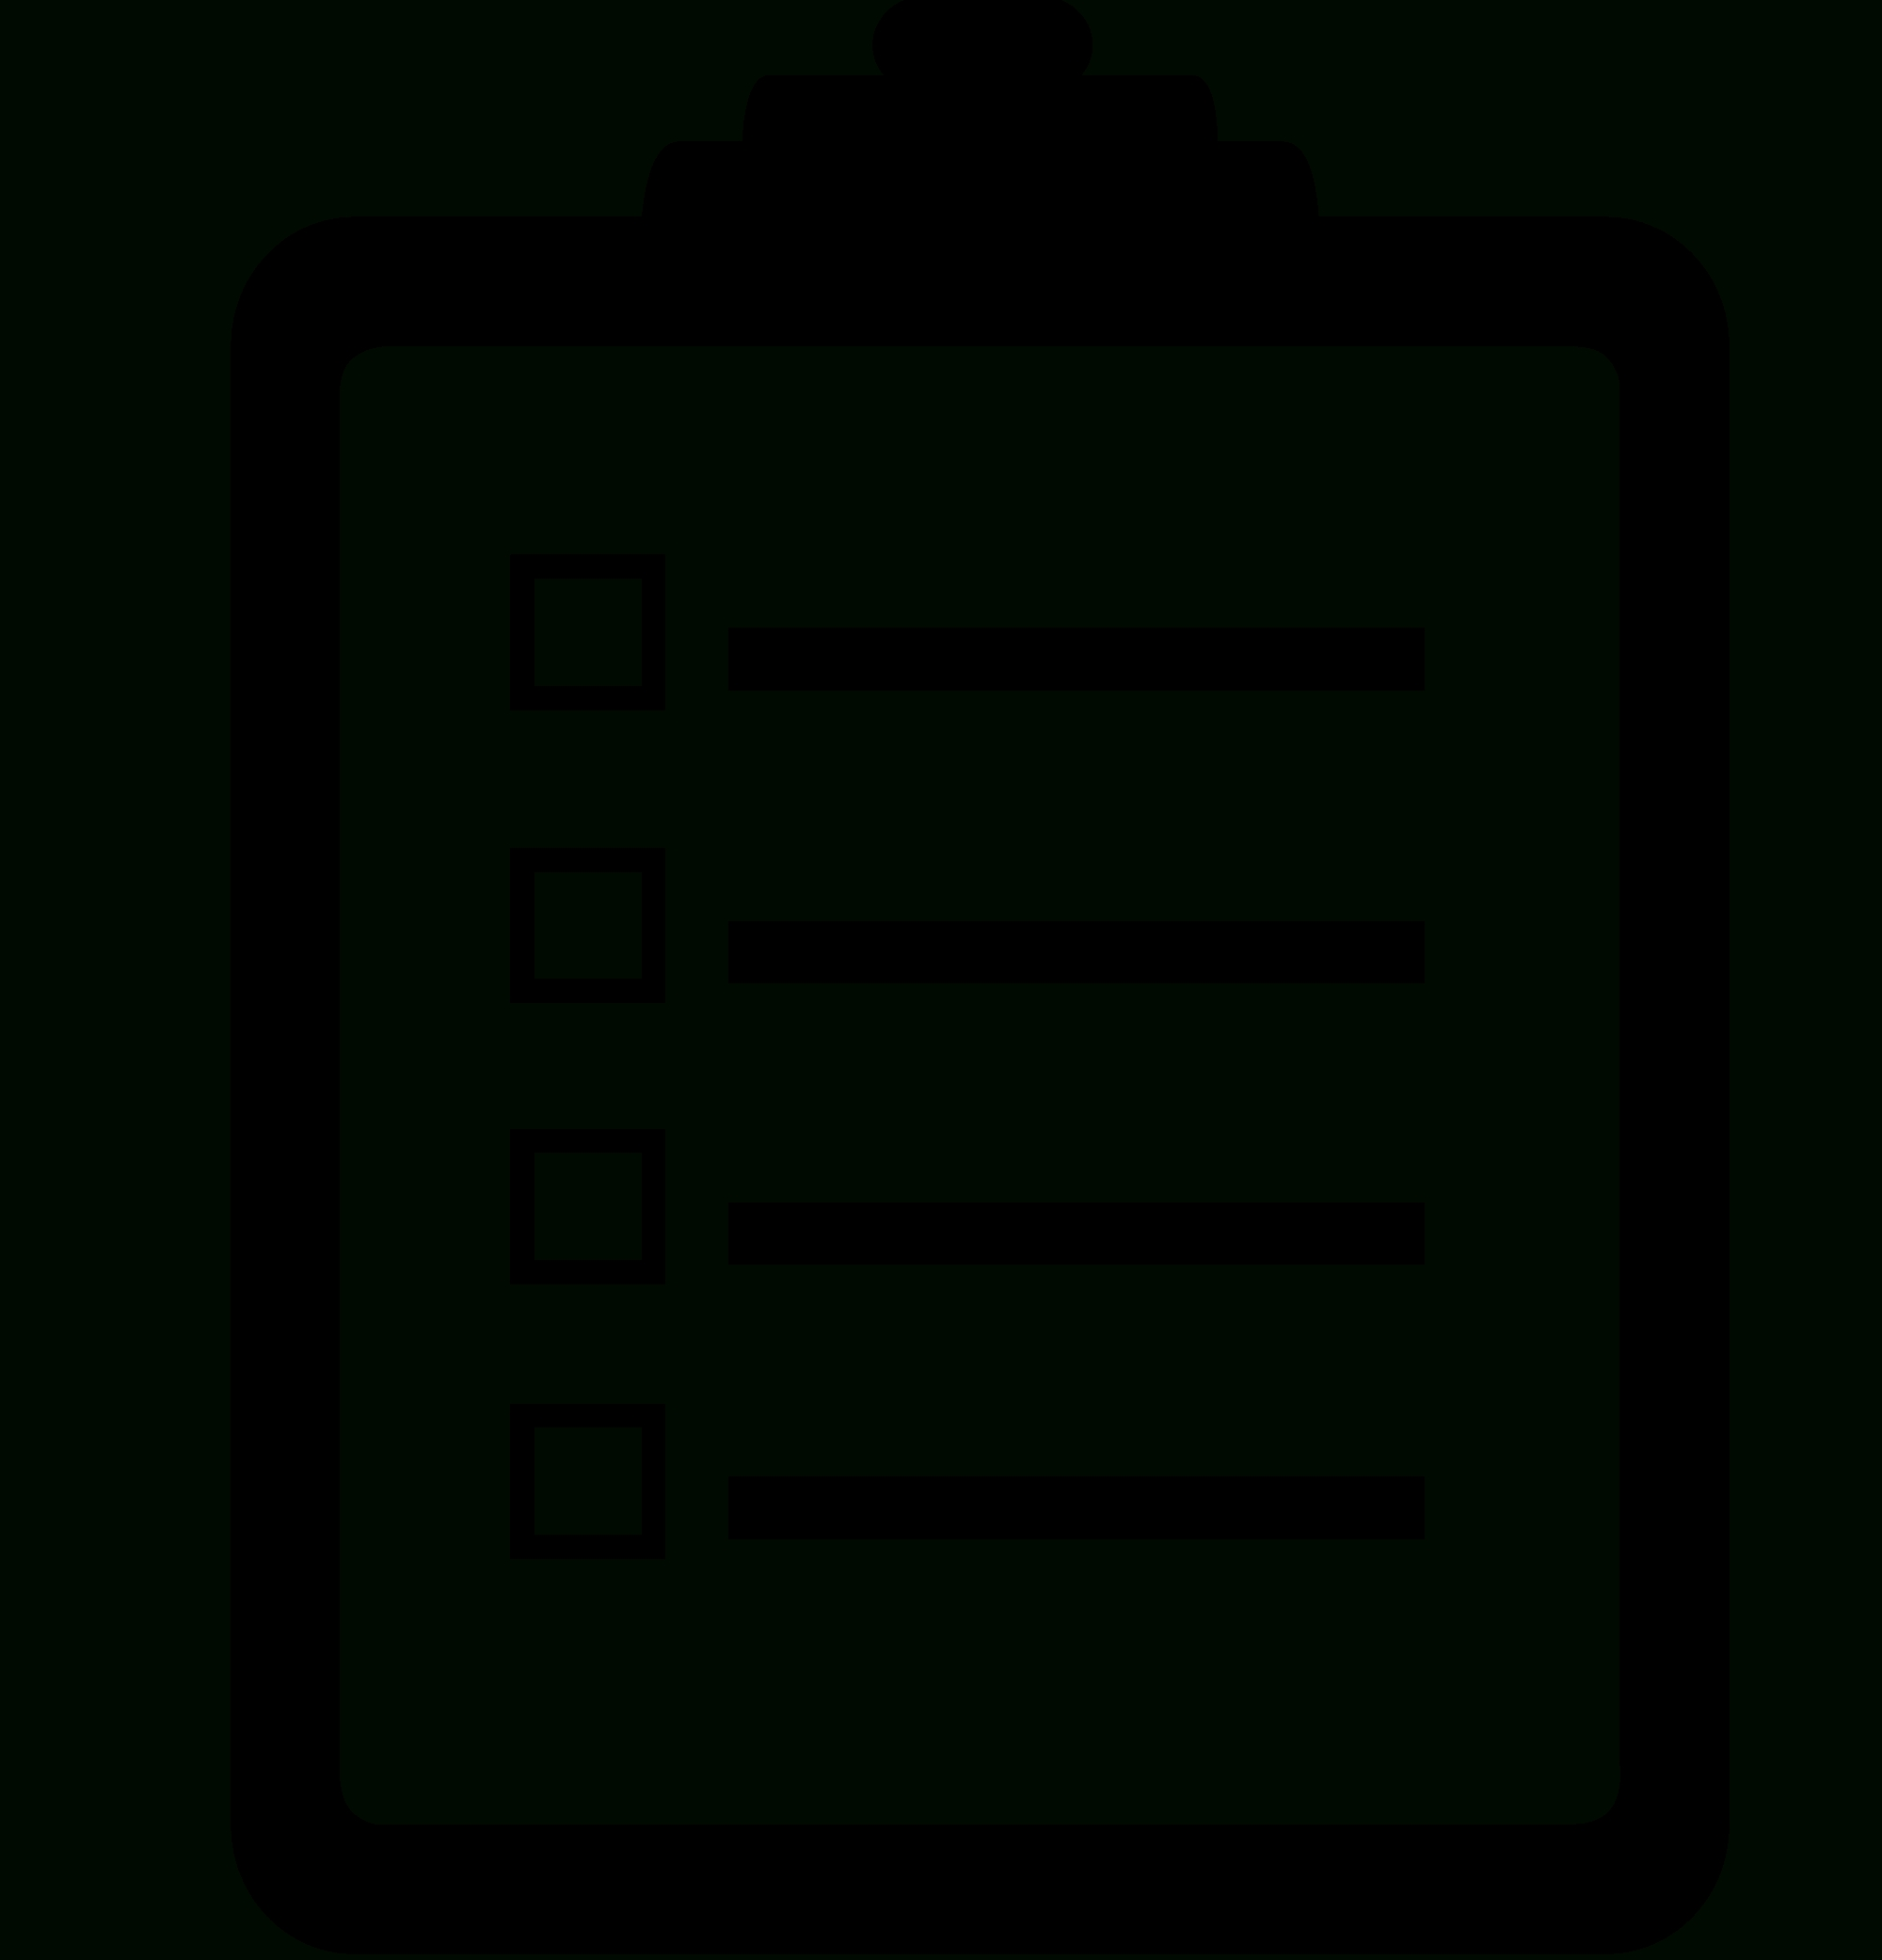 File:checklist Noun Project 5166.svg - Wikimedia Commons regarding White Checklist Png 24252